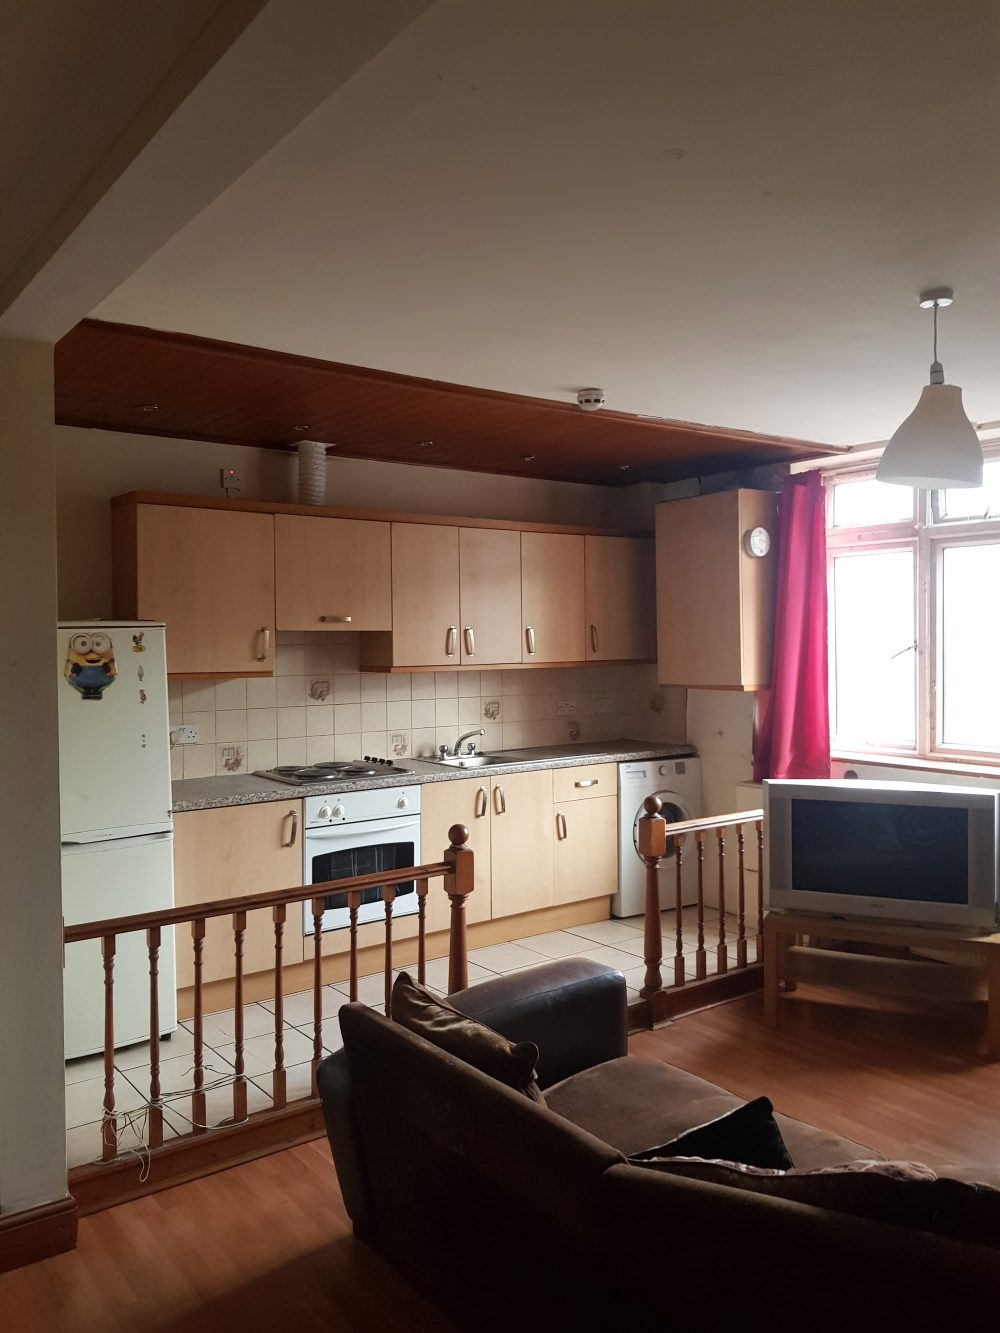 Open Plan Studio Flat to rent in N15 Manor House Pic 21